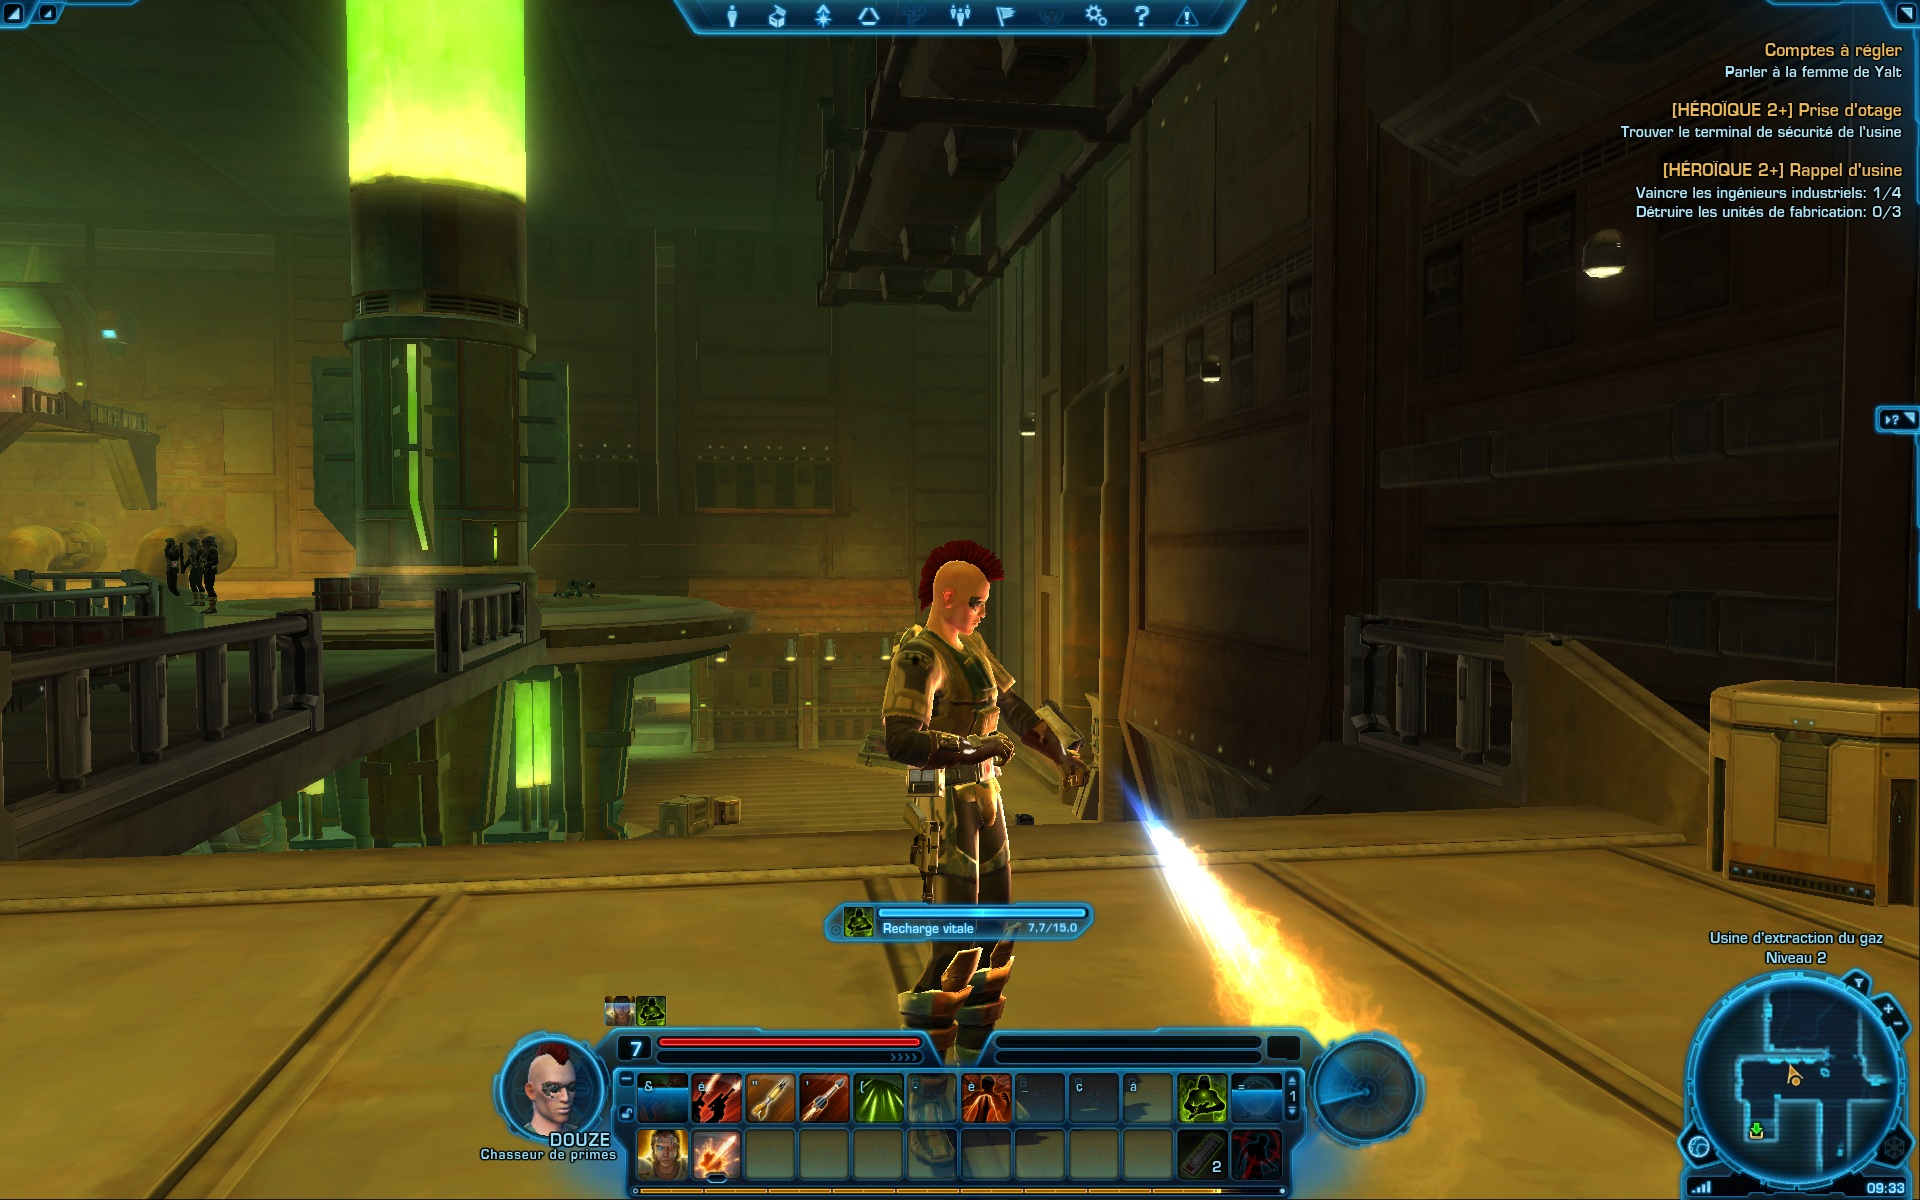 swtor beta - recharge - 1920 x 1200 - swtor beta - recharge